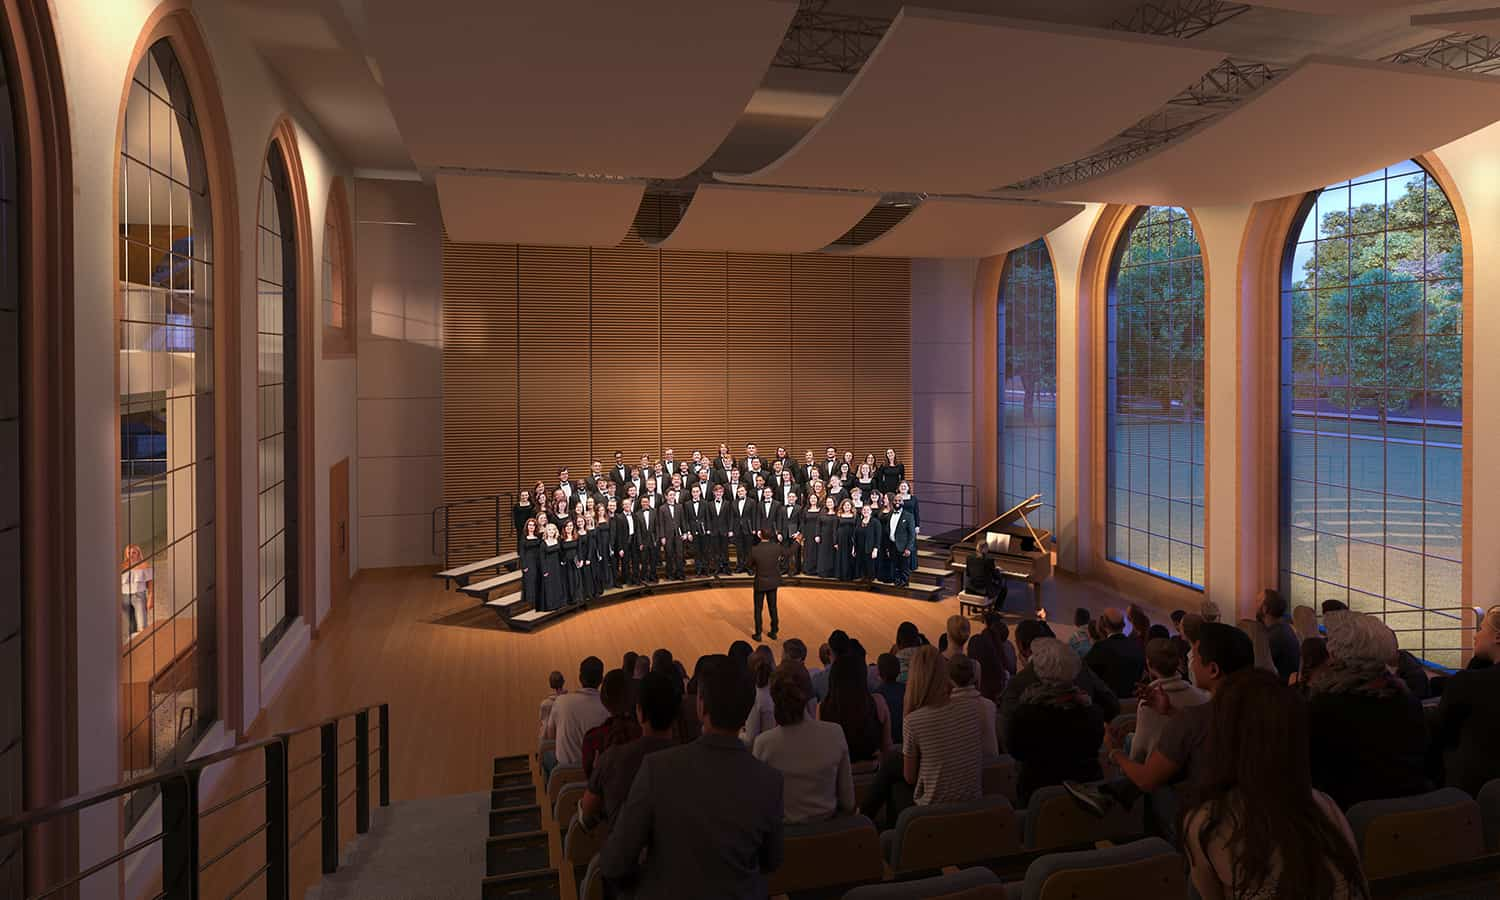 Rendering of the chorale hall with floor to ceiling arches that allow views into and out of the space.